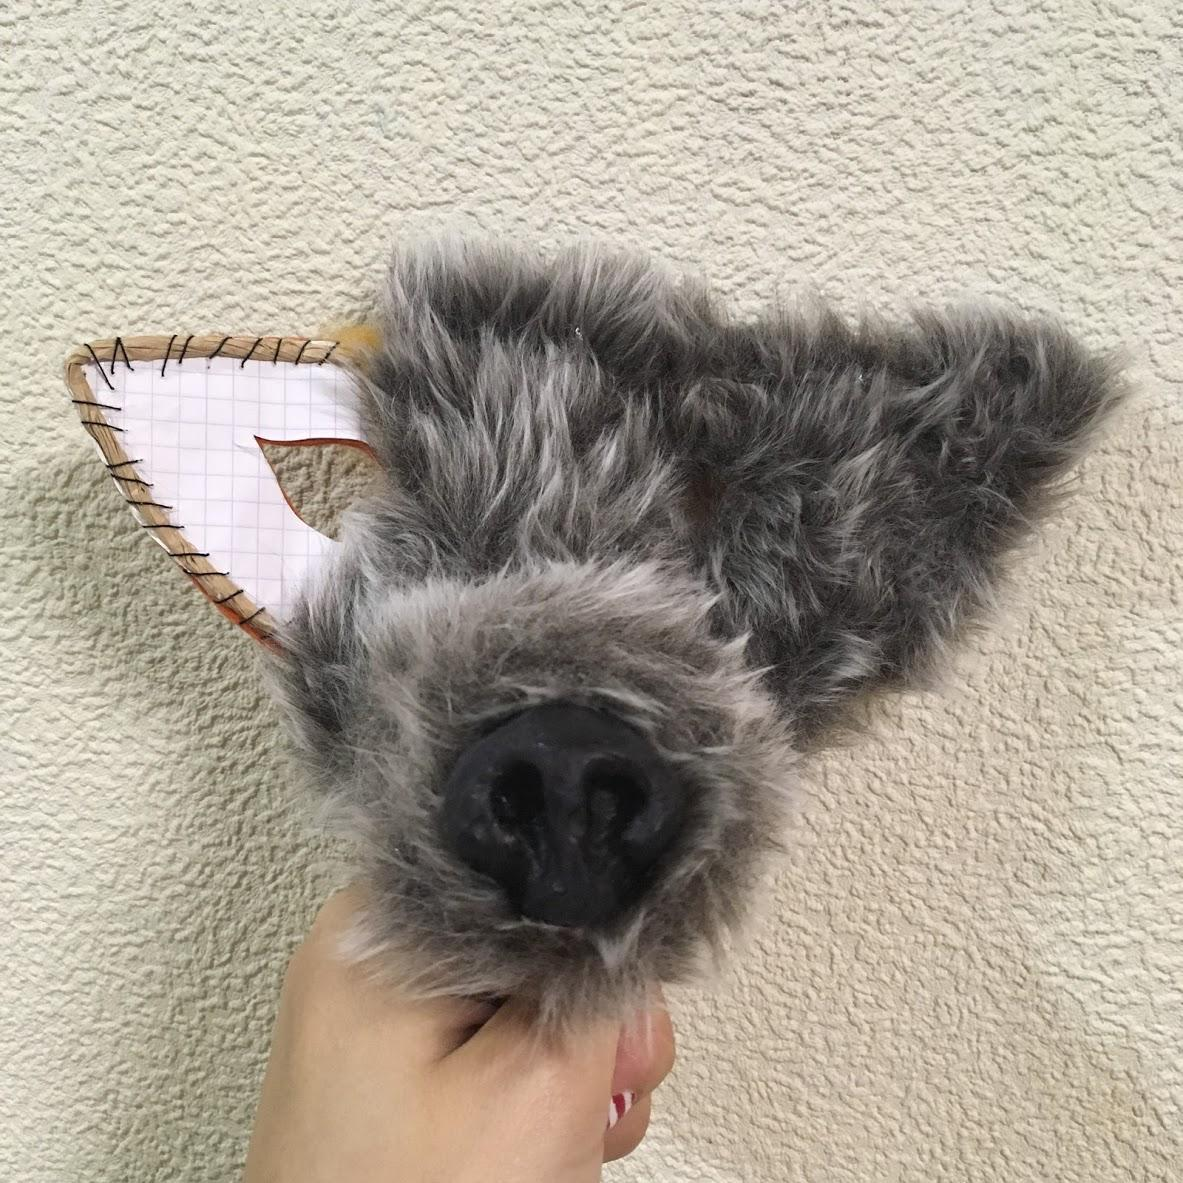 How to make a wolf out of paper